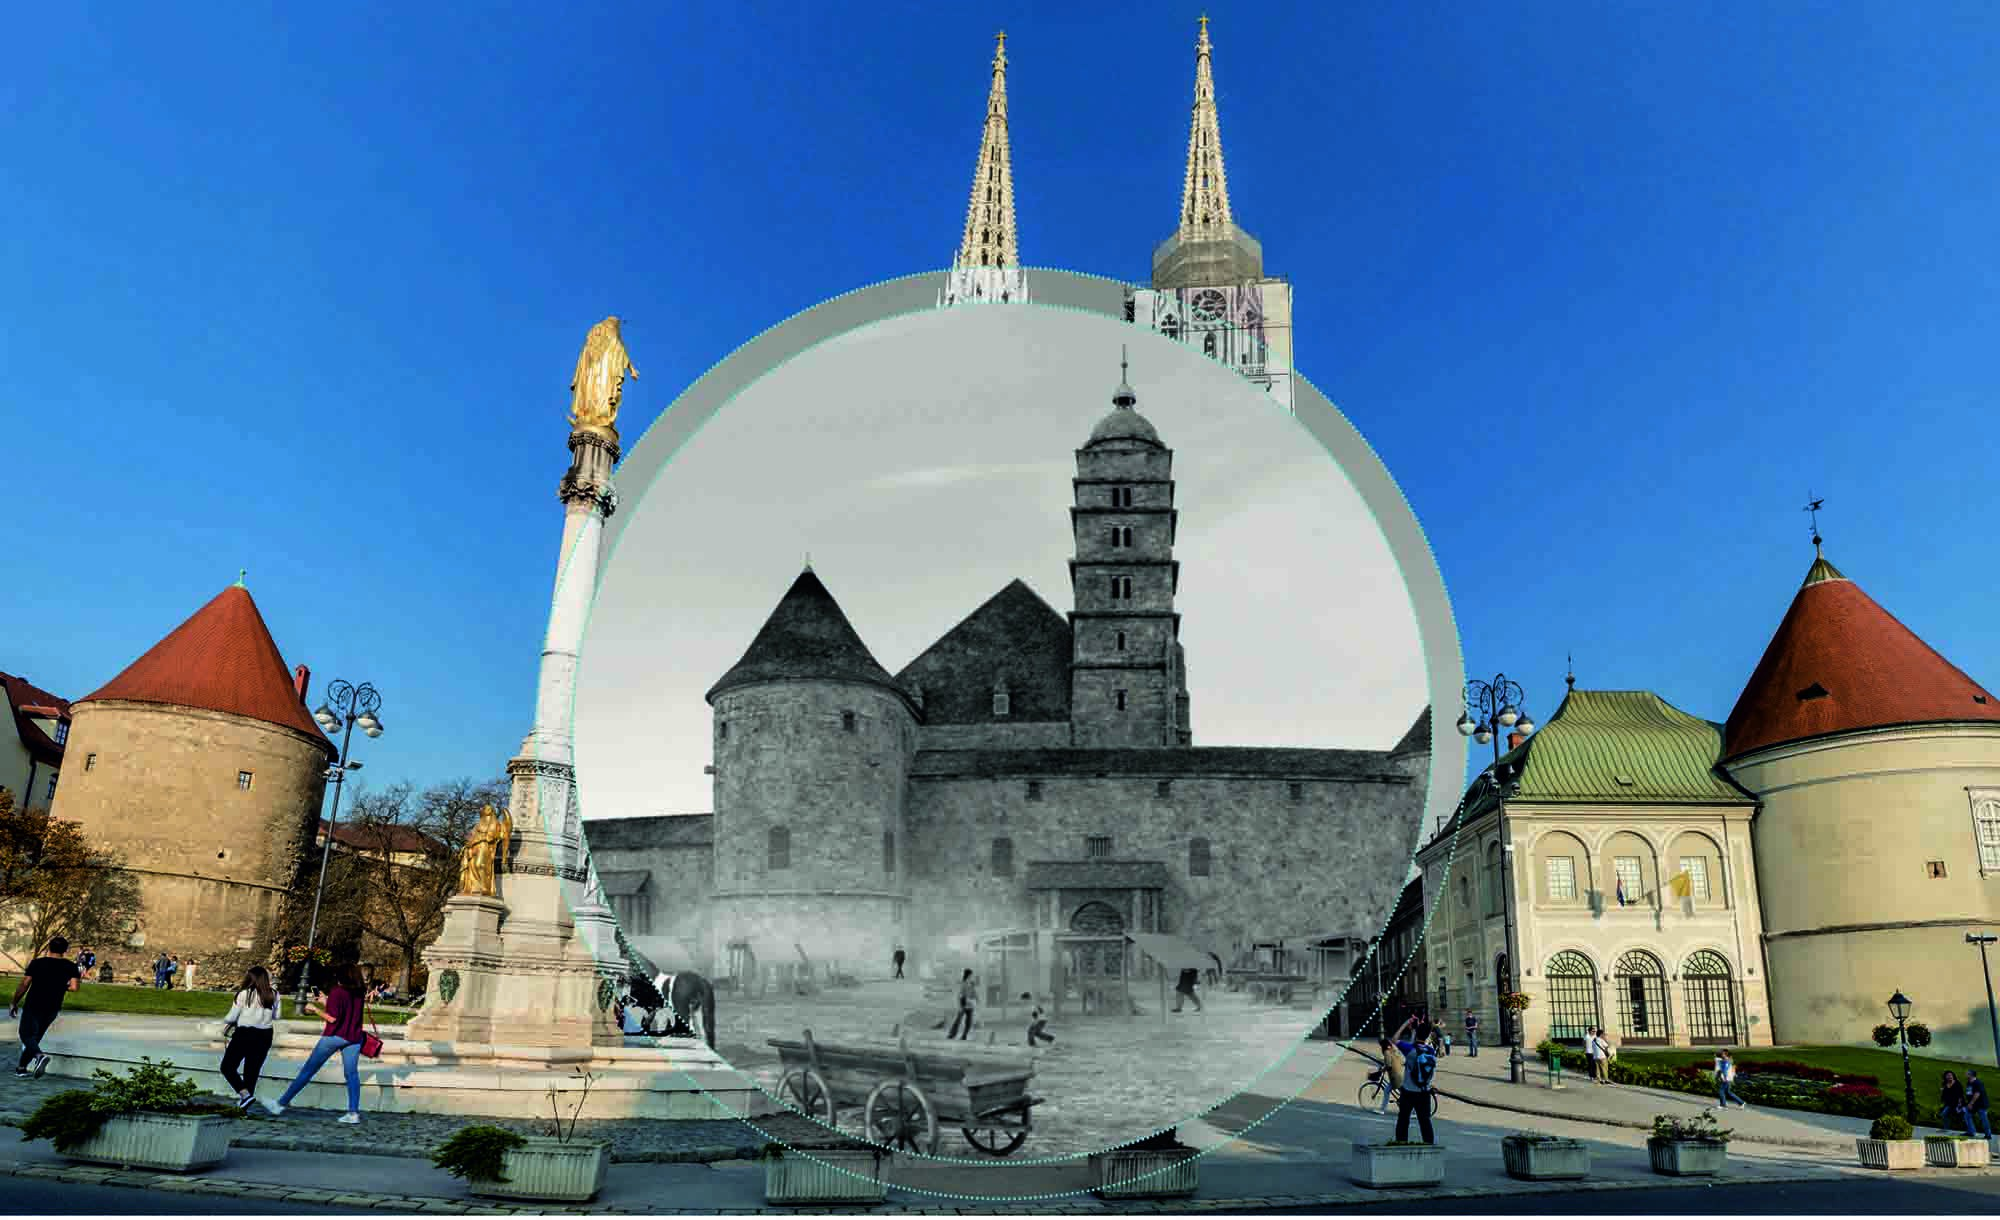 The cathedral in Zagreb, viewed through the VR Pole